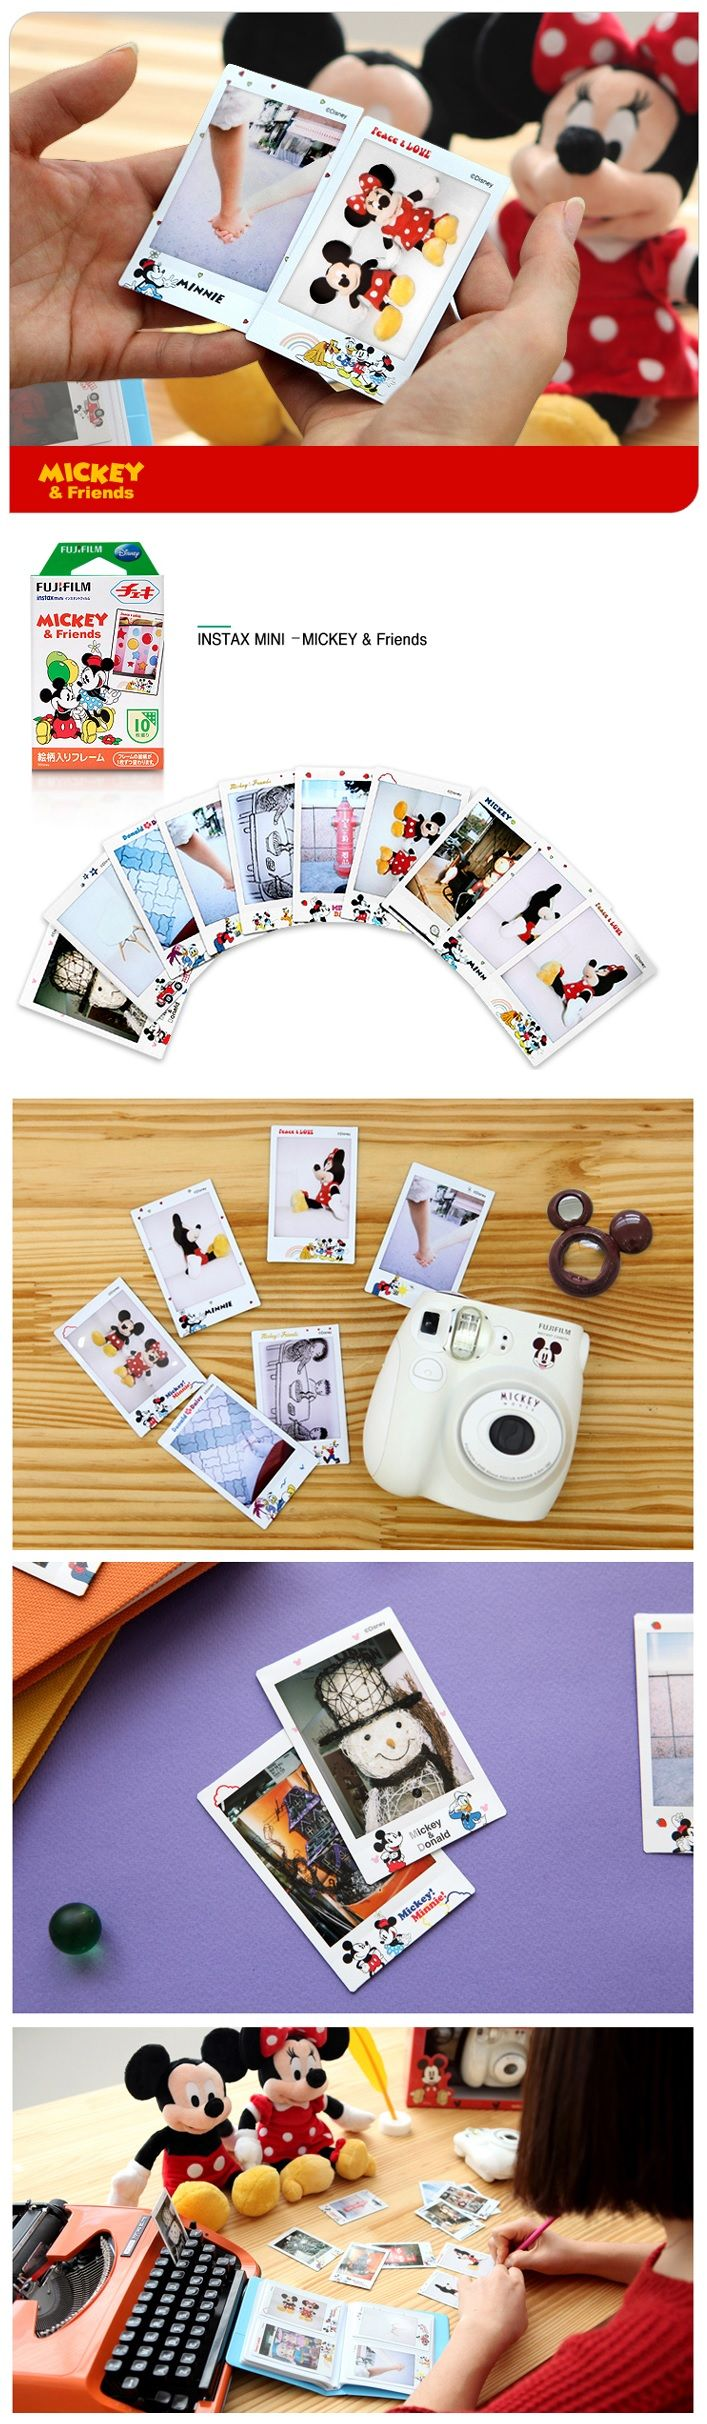 Fujifilm Instax Mini Film Disney Mickey Mouse for Instax Mini Camera 10pcs for 1 pack